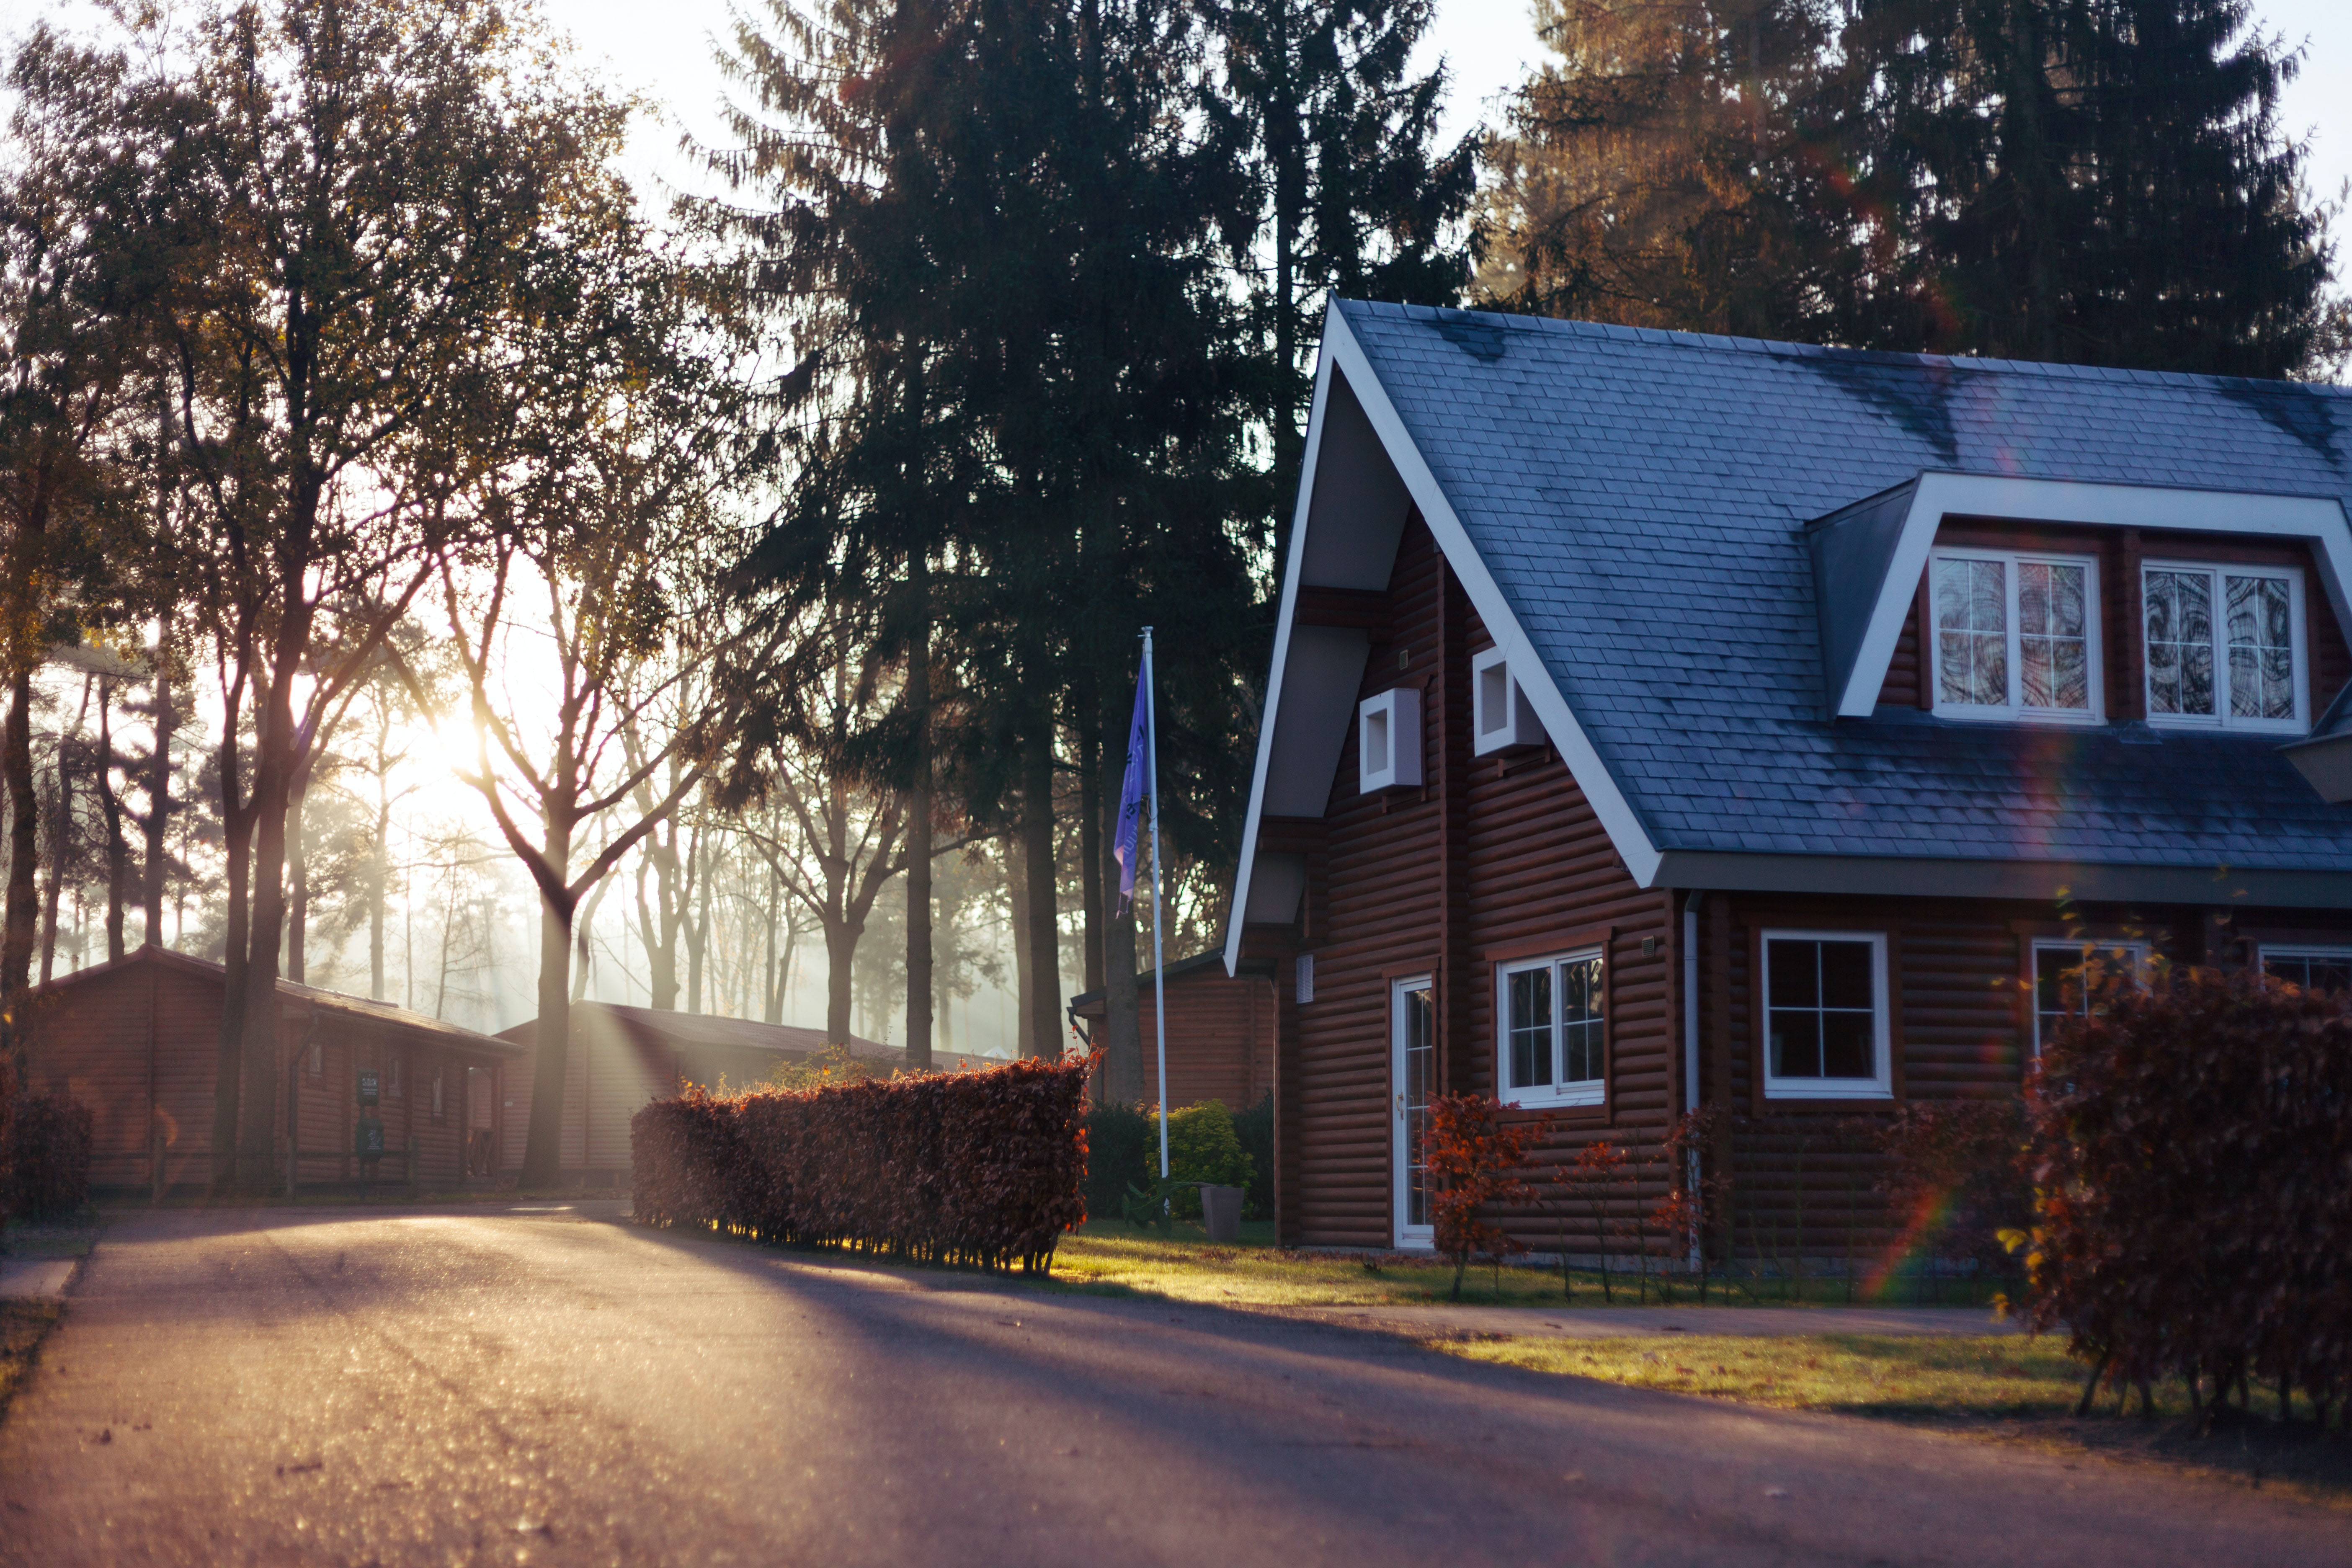 What You Need to Know About the $15k First-Time Homebuyer Tax Credit